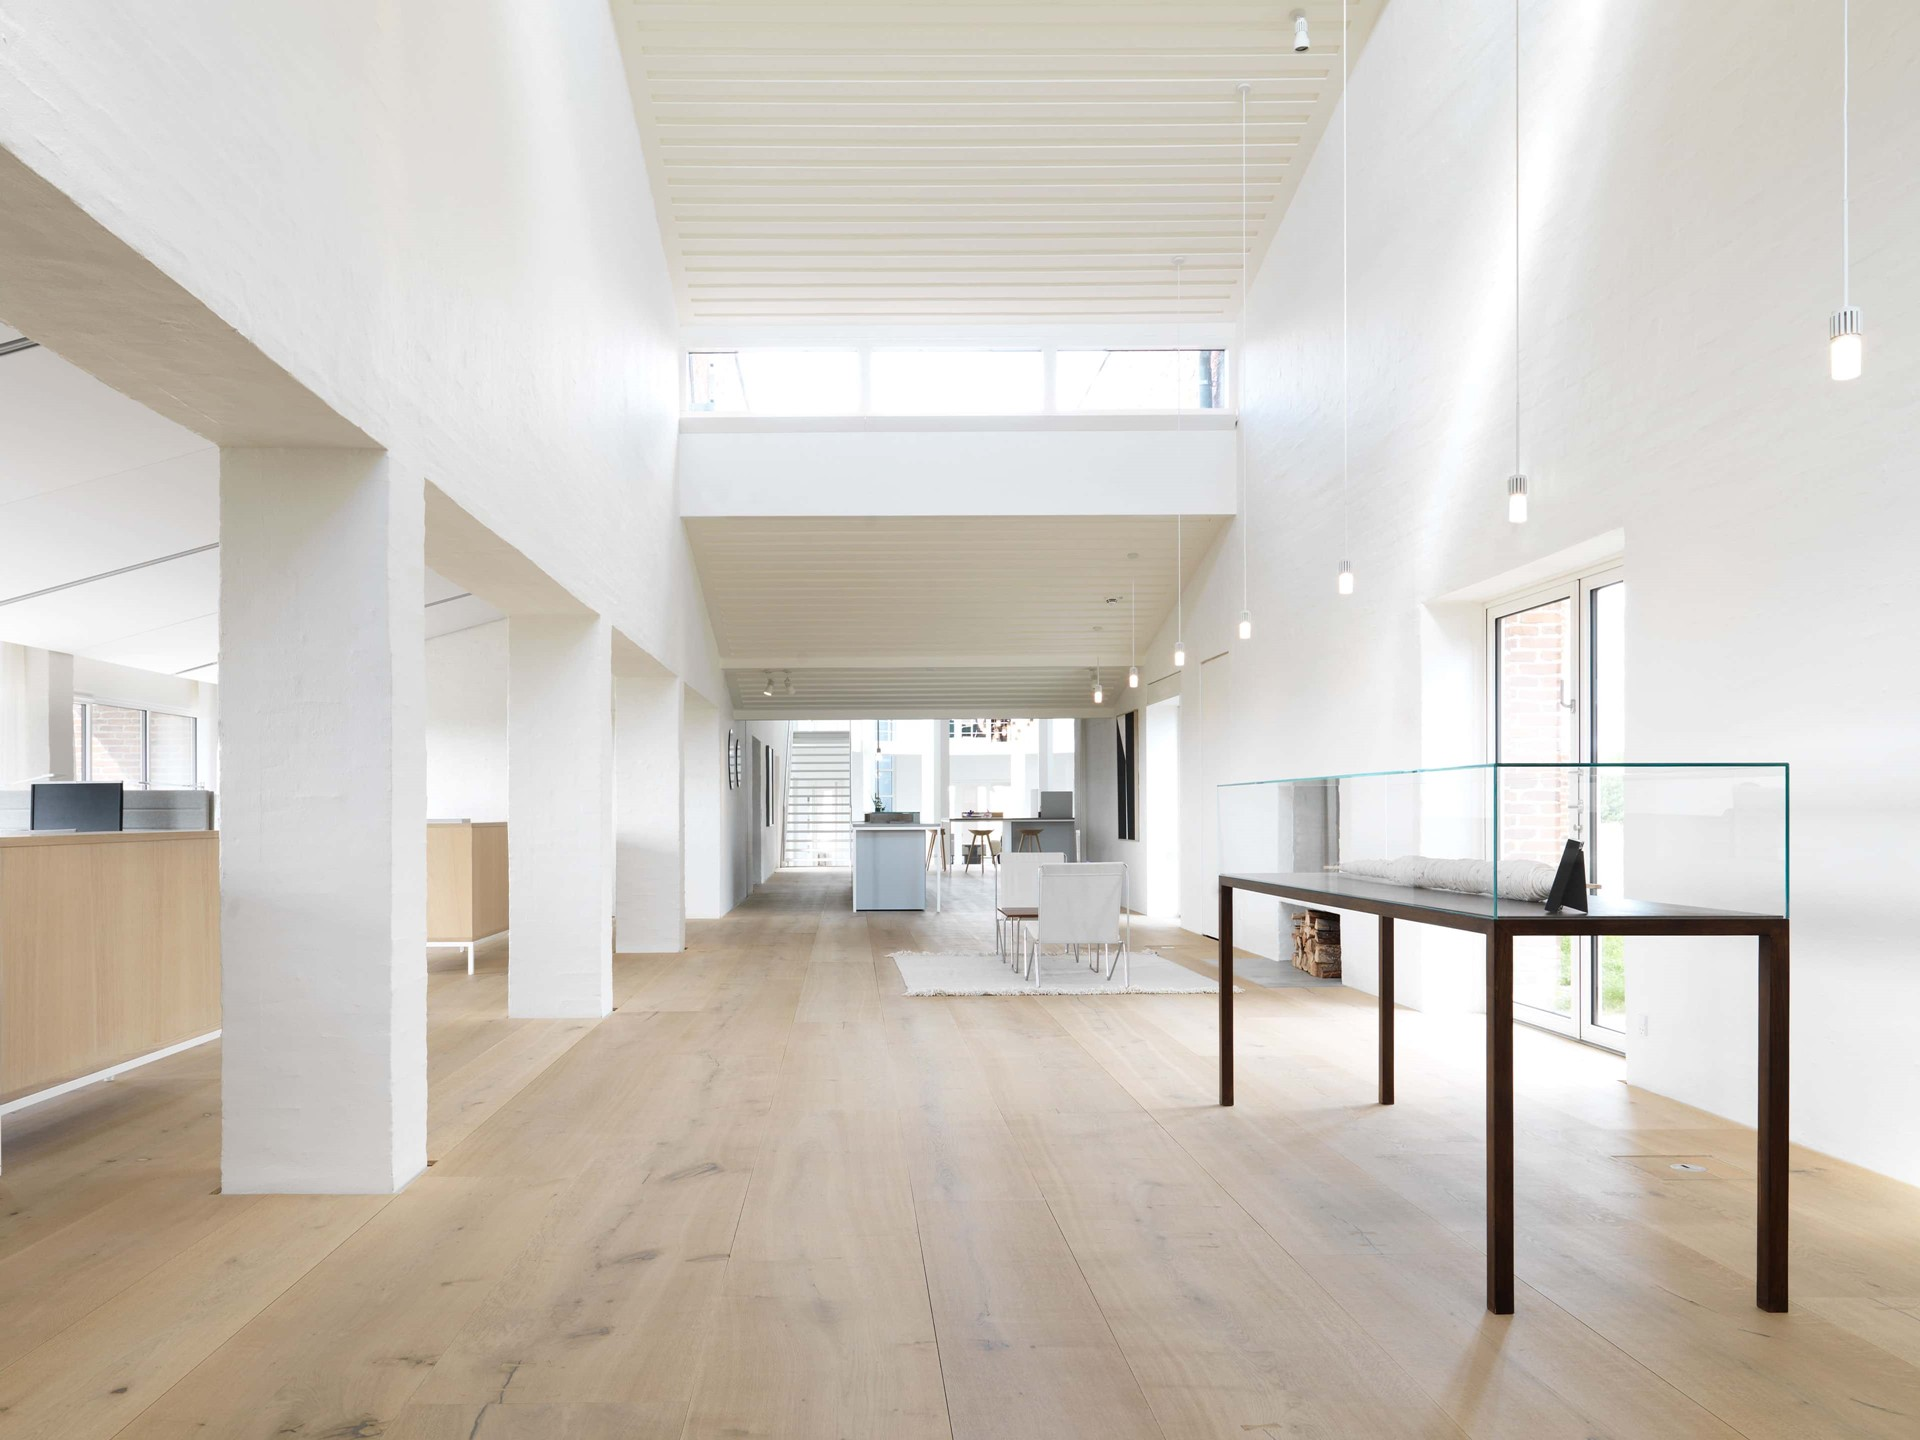 oak-planks-heartoak_treatment-light-oil_kvadrat-hq_dinesen_03.jpg